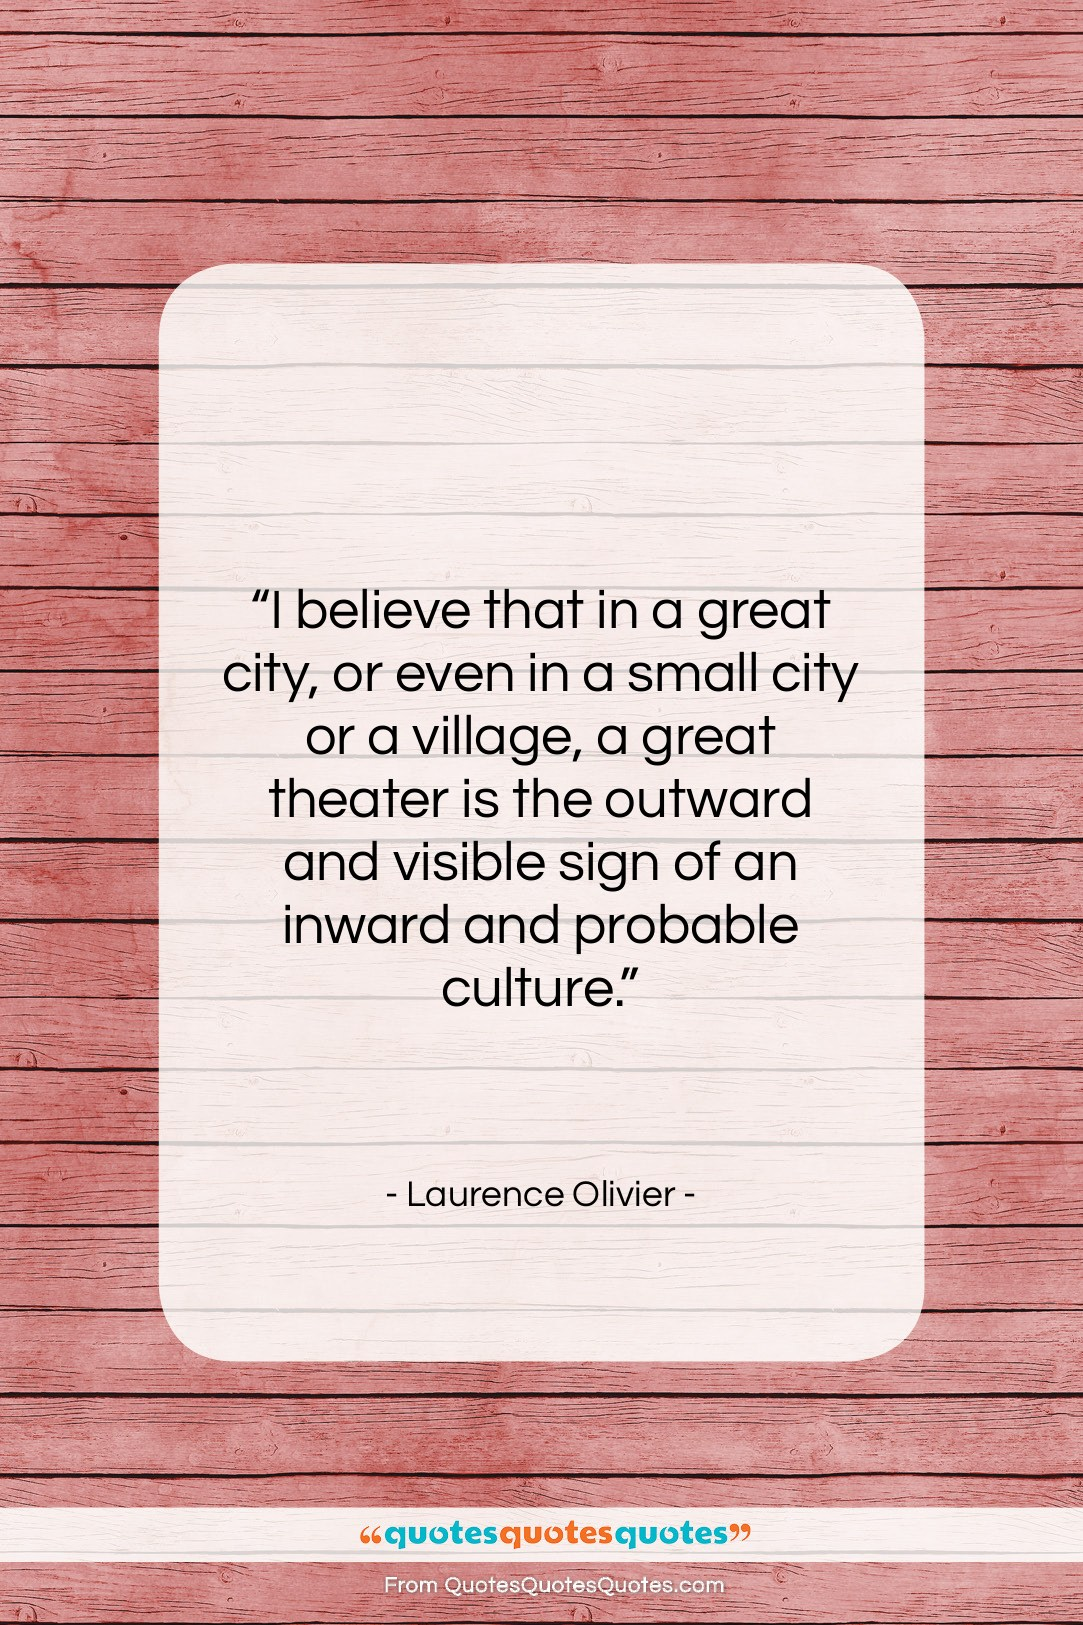 """Laurence Olivier quote: """"I believe that in a great city,…""""- at QuotesQuotesQuotes.com"""